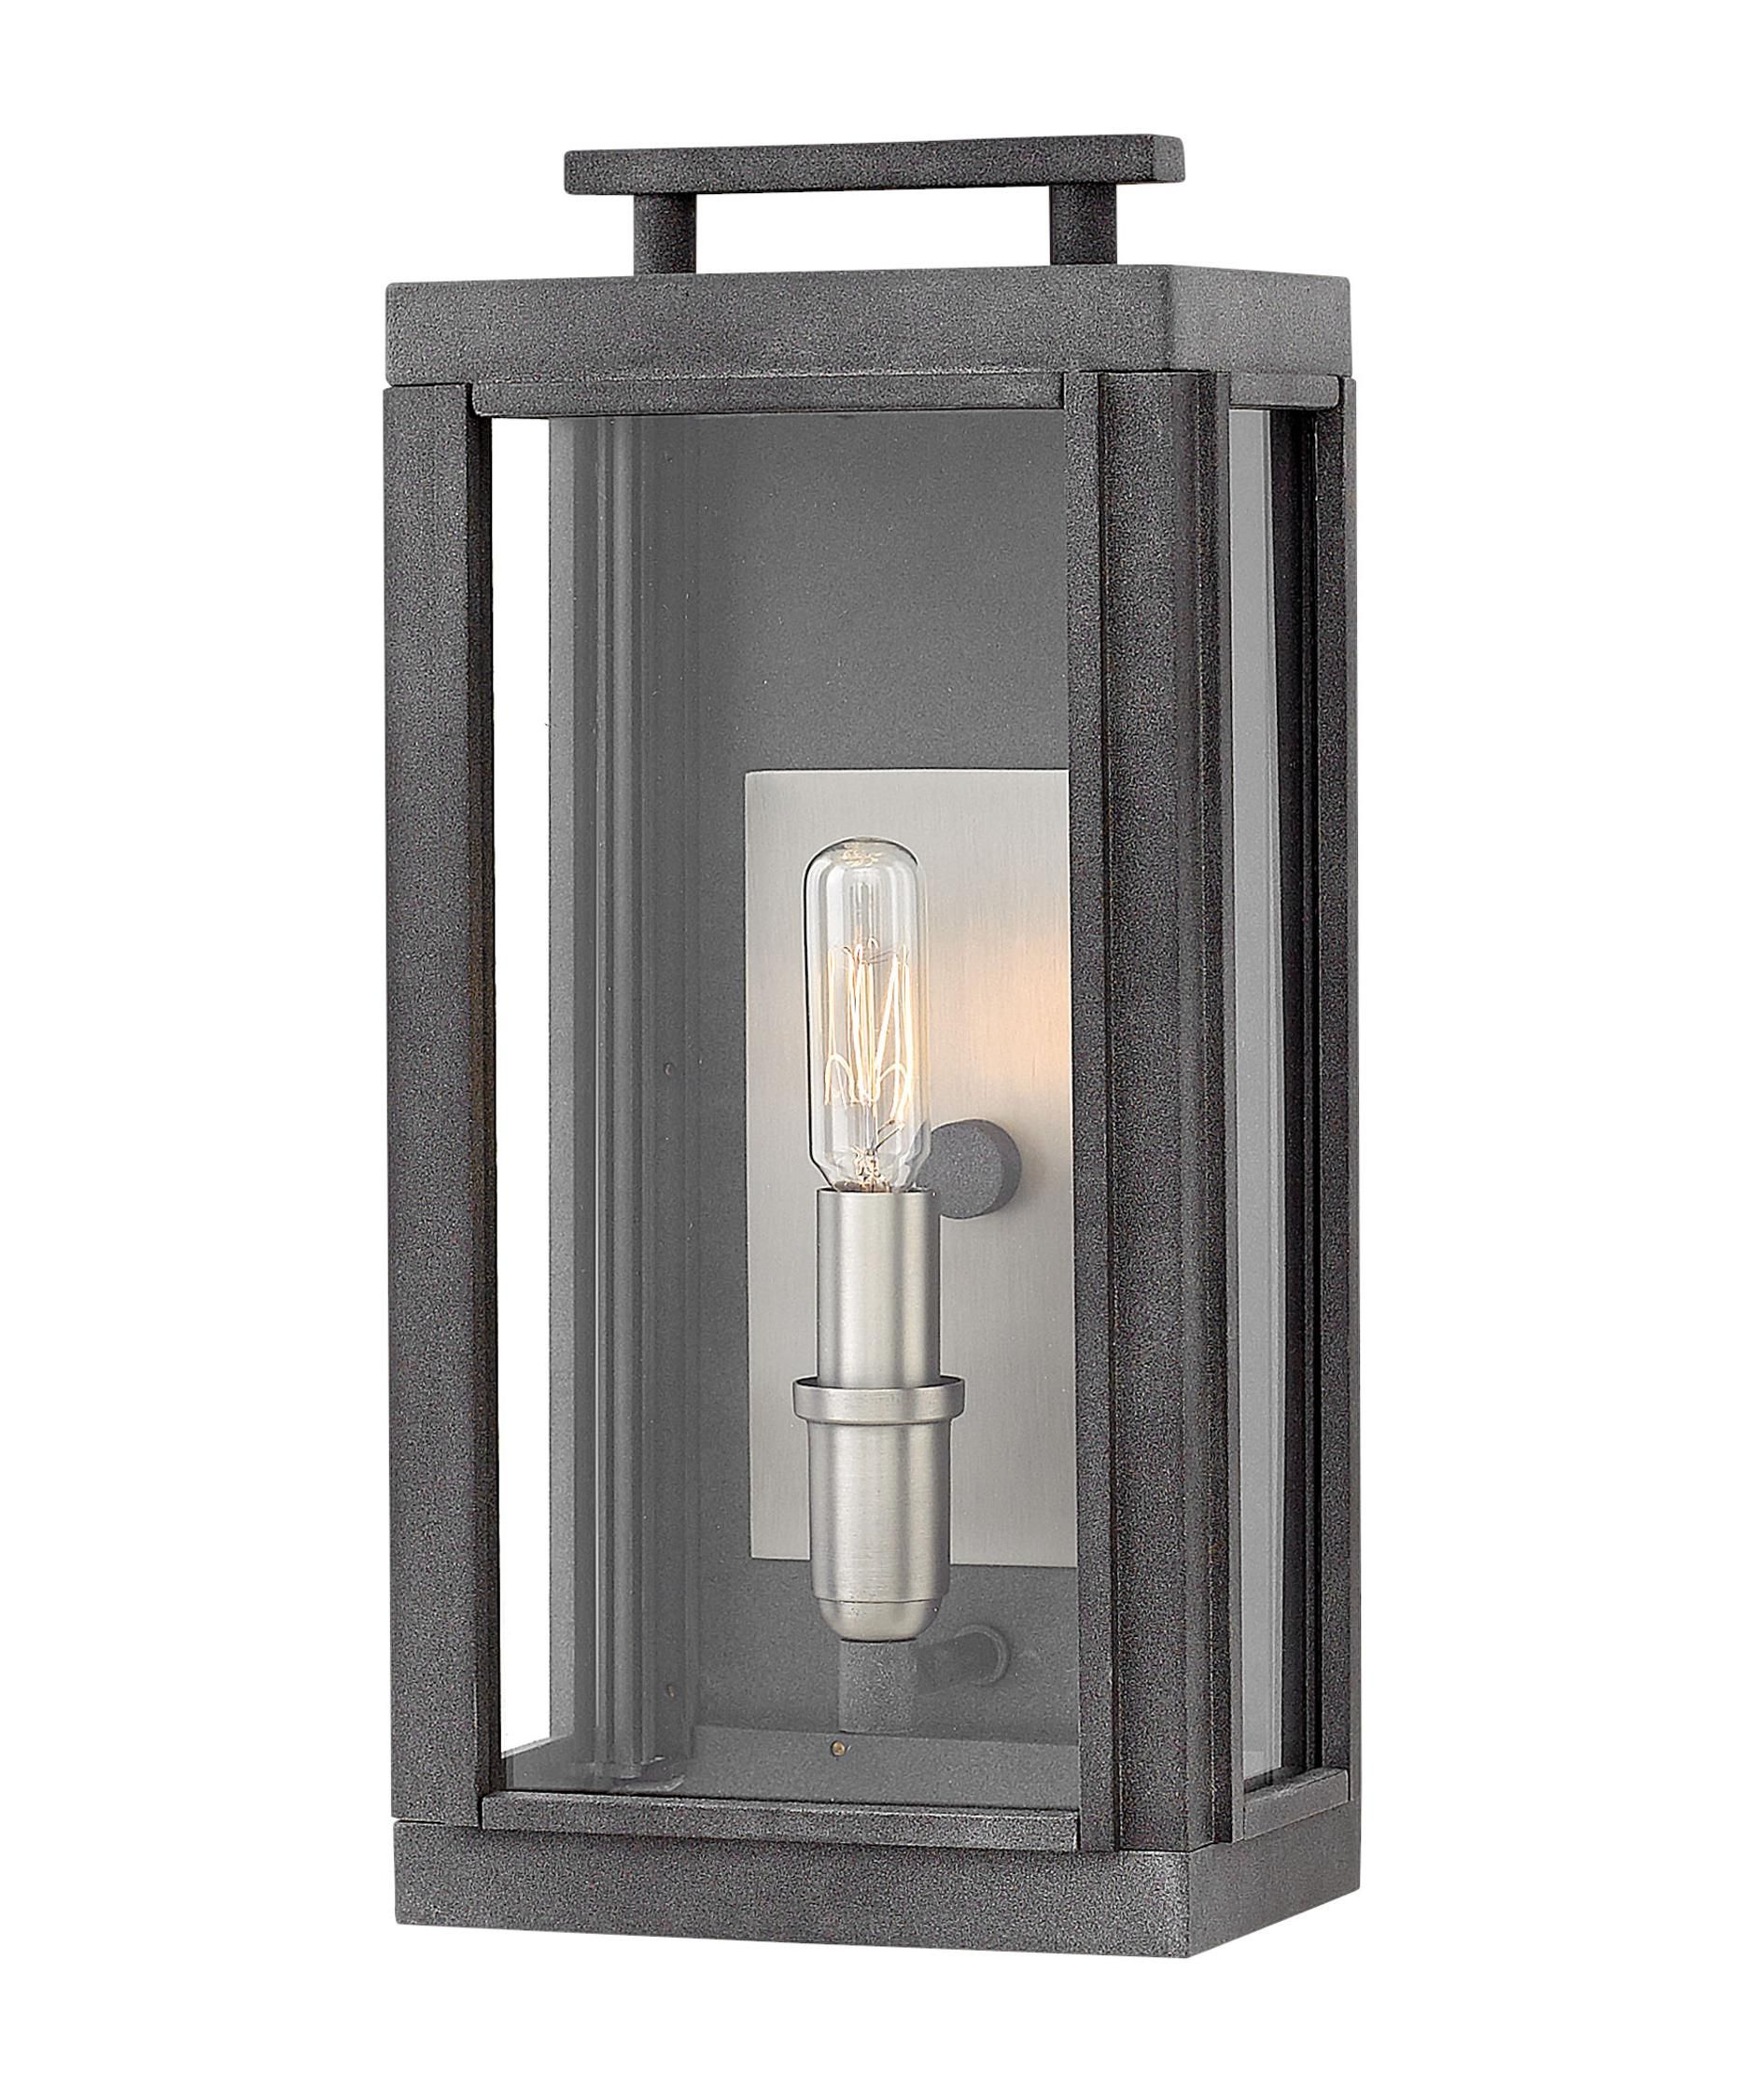 Sutcliffe 14 Inch Tall 1 Light Outdoor Wall Light By